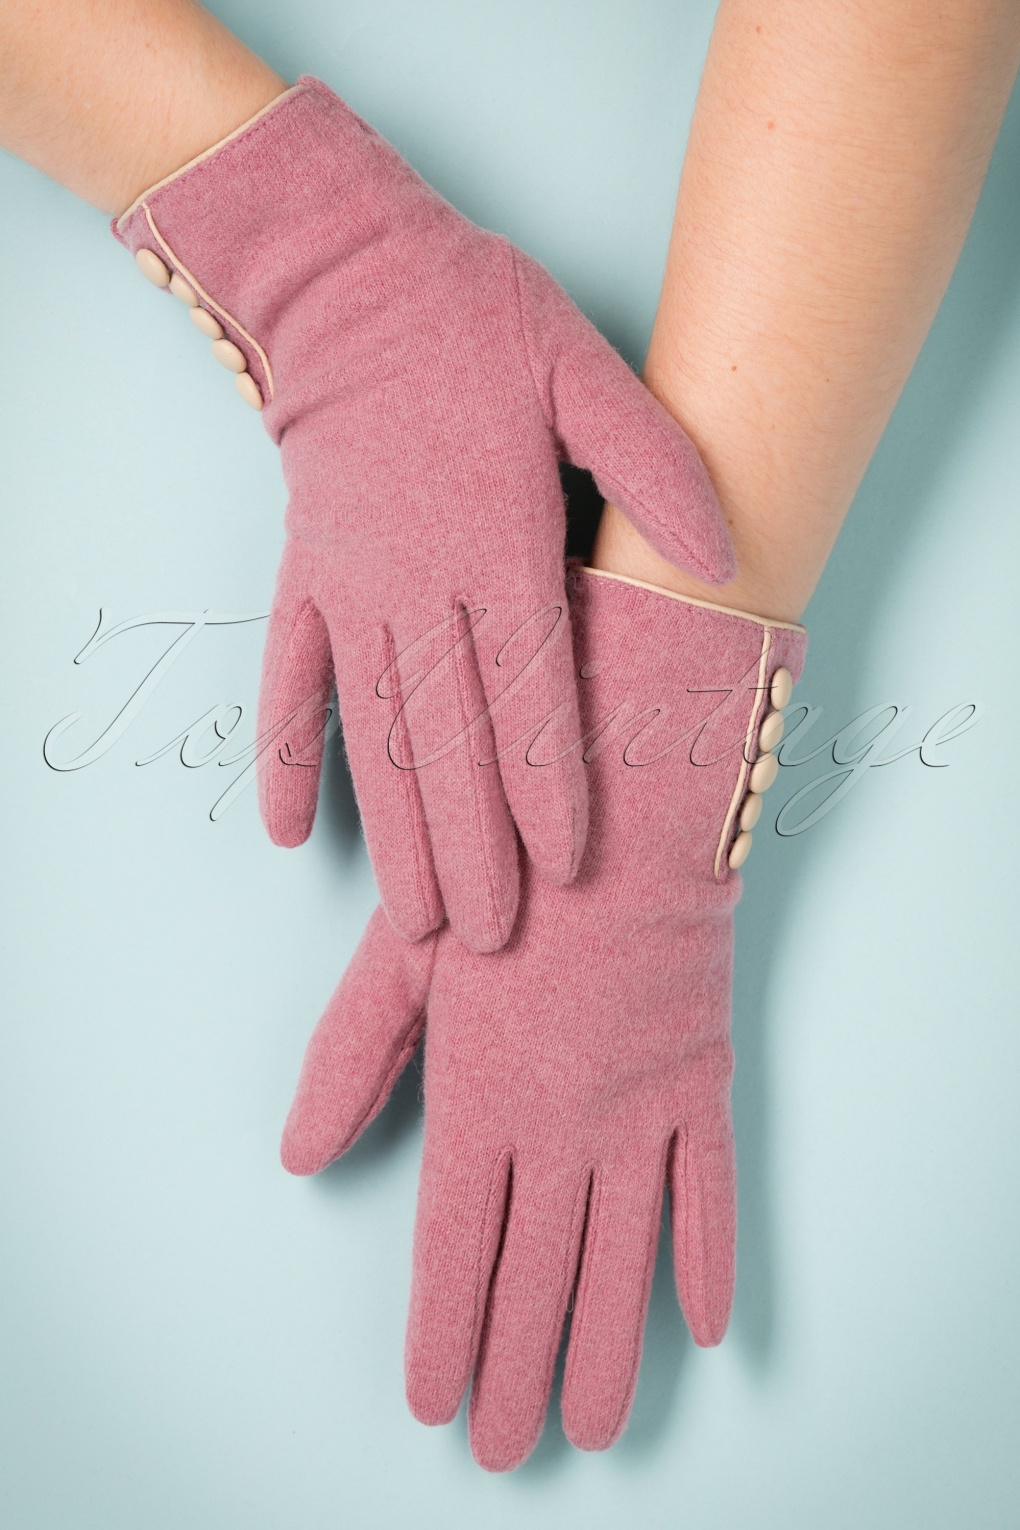 Vintage Style Gloves 40s Clementine Wool Gloves in Candy Pink £26.17 AT vintagedancer.com